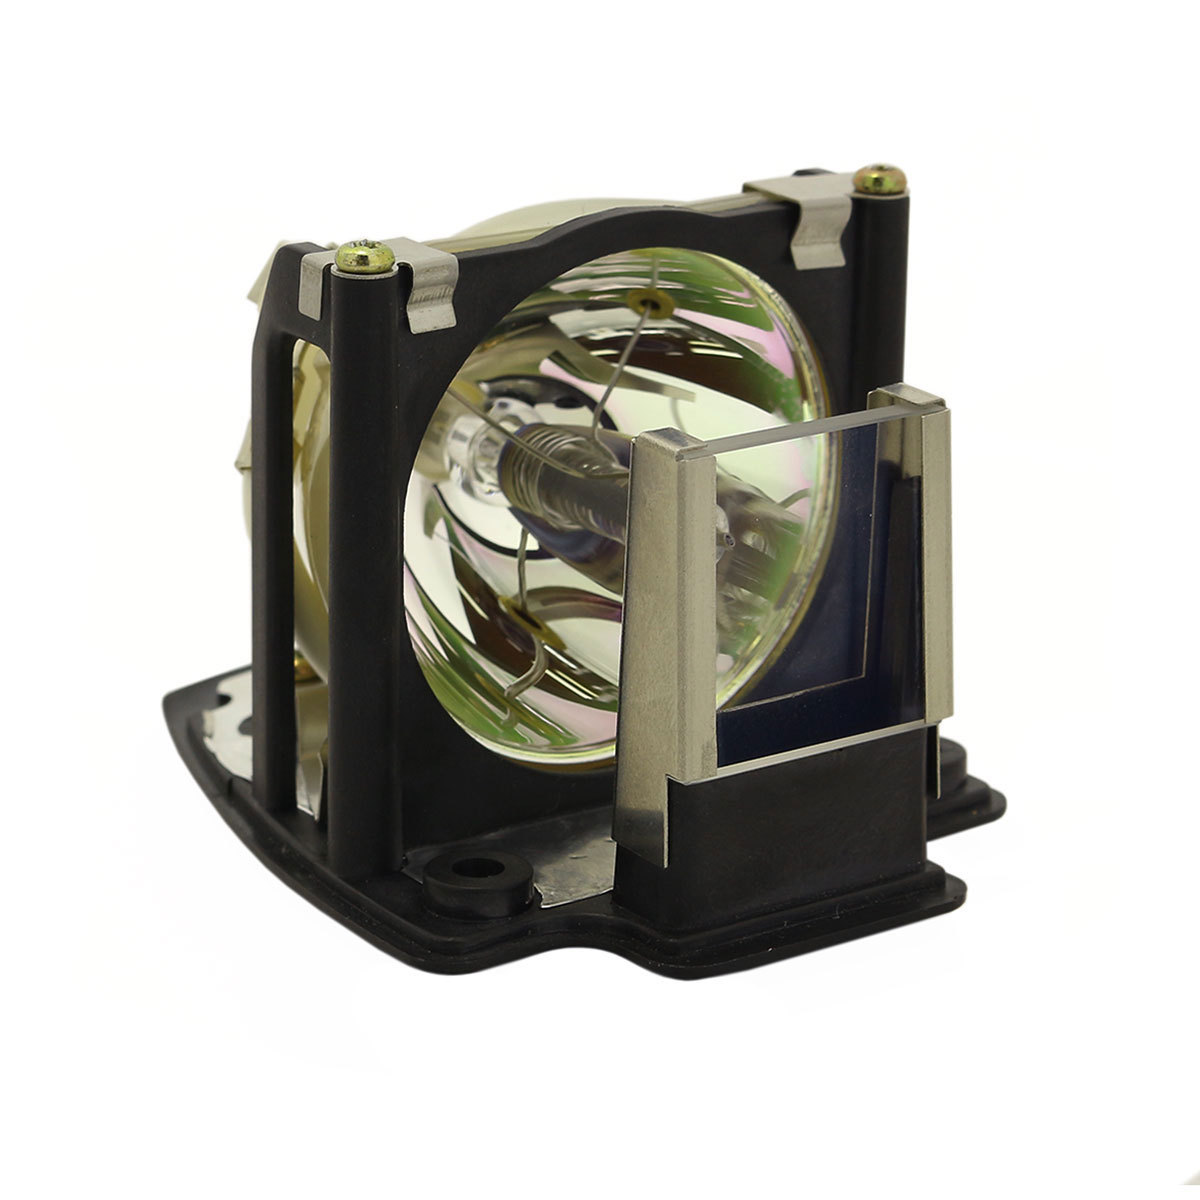 Primary image for Geha 60-254750 Compatible Projector Lamp Module